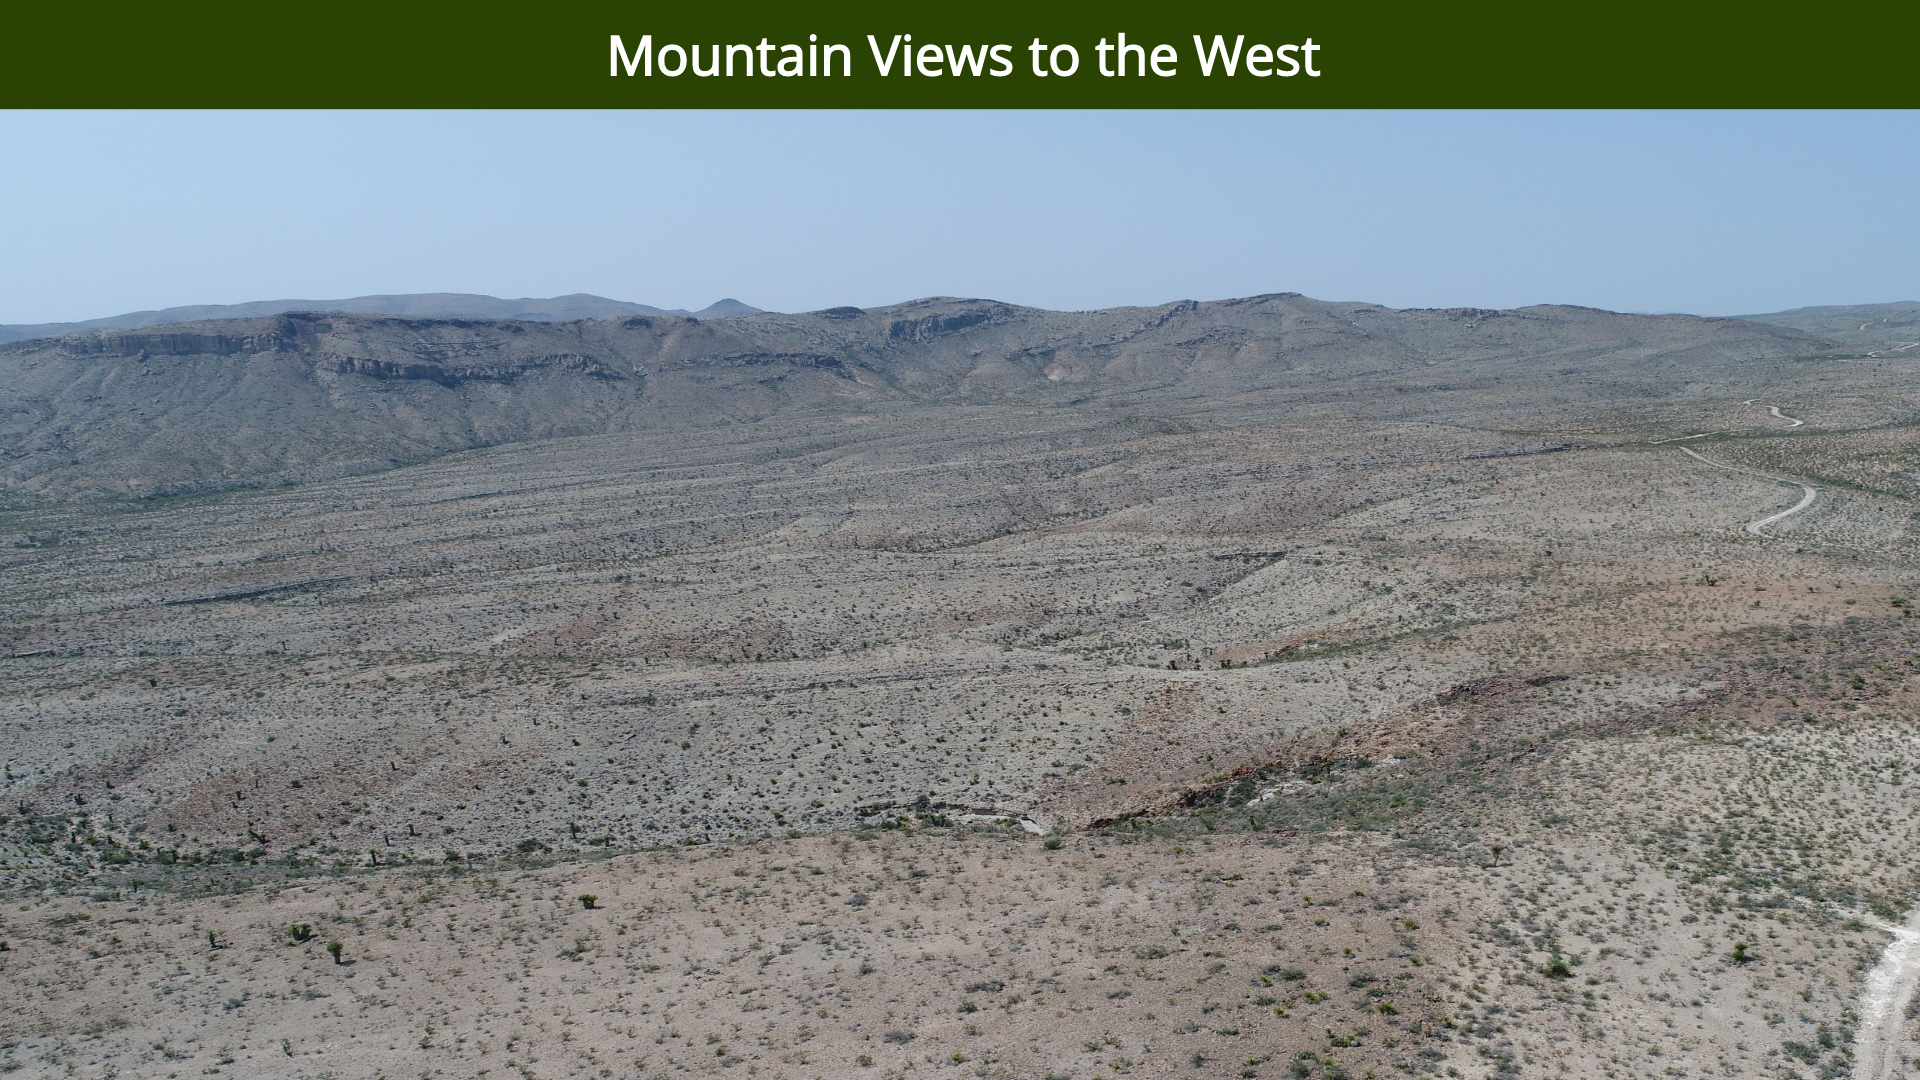 Mountain Views to the West